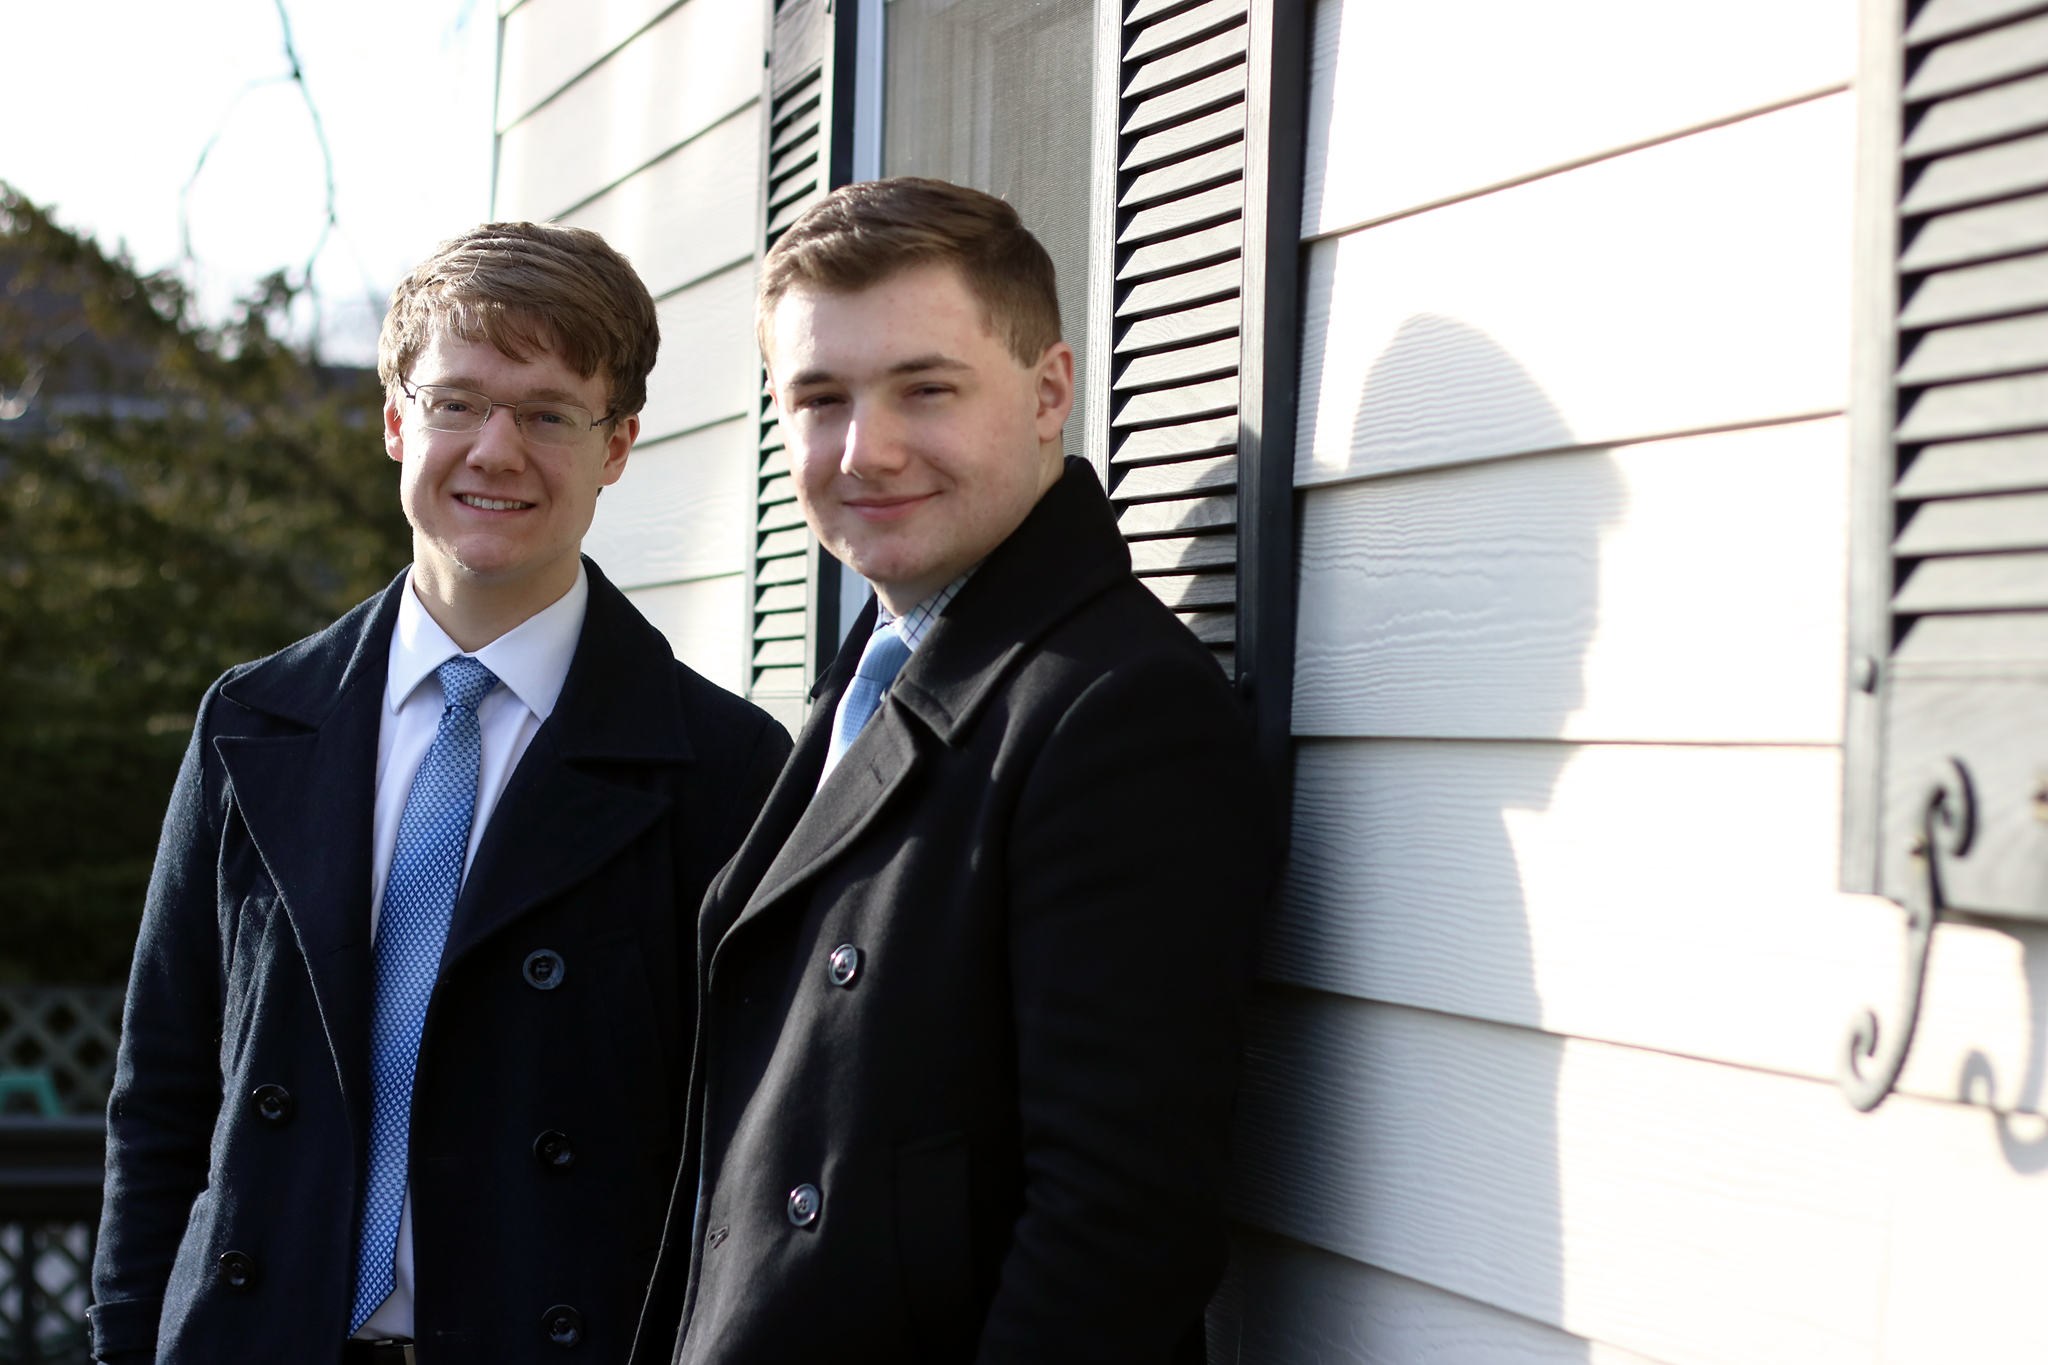 Patrick Henry College (PHC) student body Vice President-Elect Matthew Hoke and President-Elect Daniel Thetford